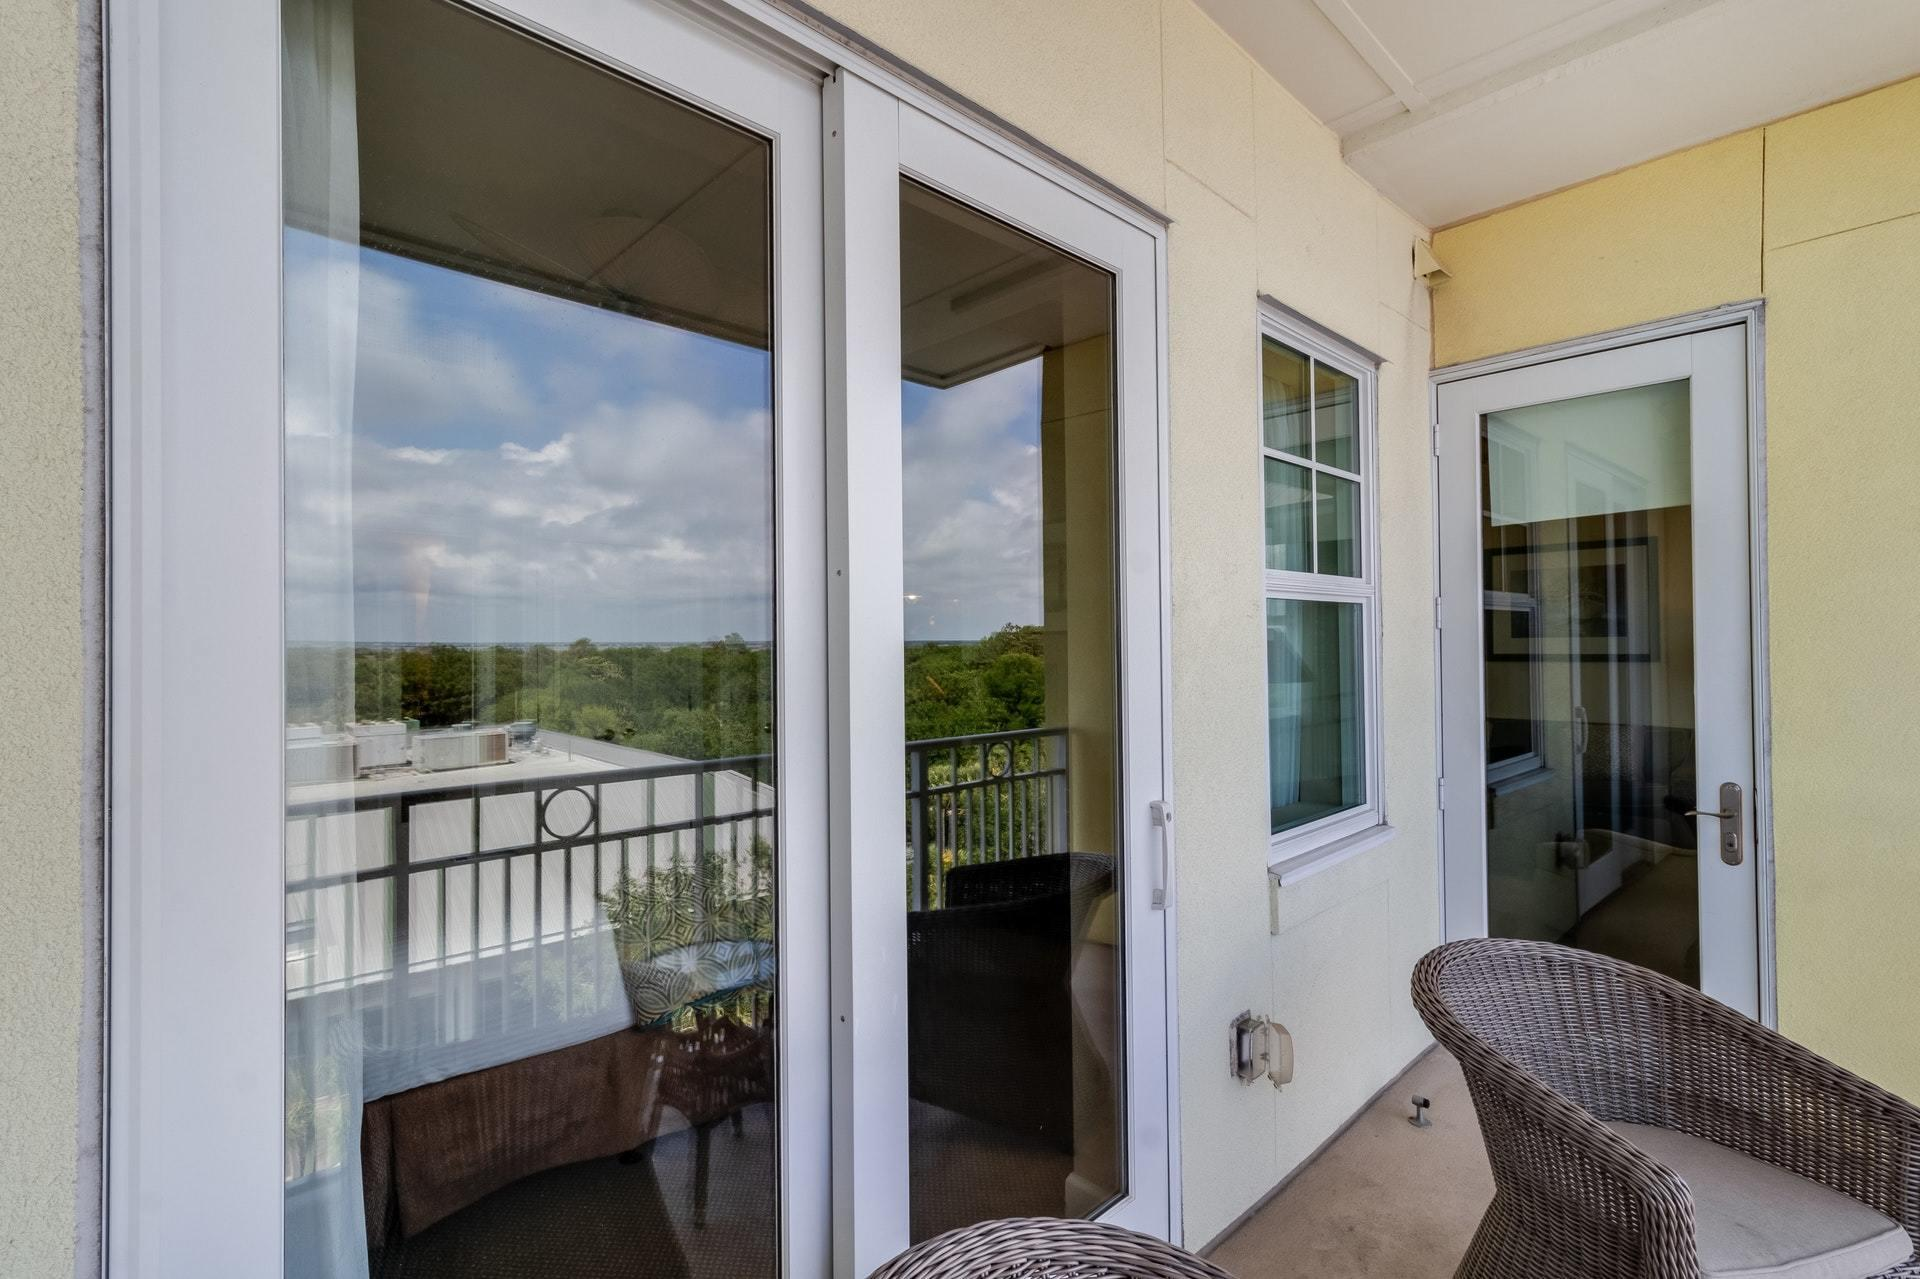 Wild Dunes Homes For Sale - 505/507 Village At Wild Dunes, Isle of Palms, SC - 14